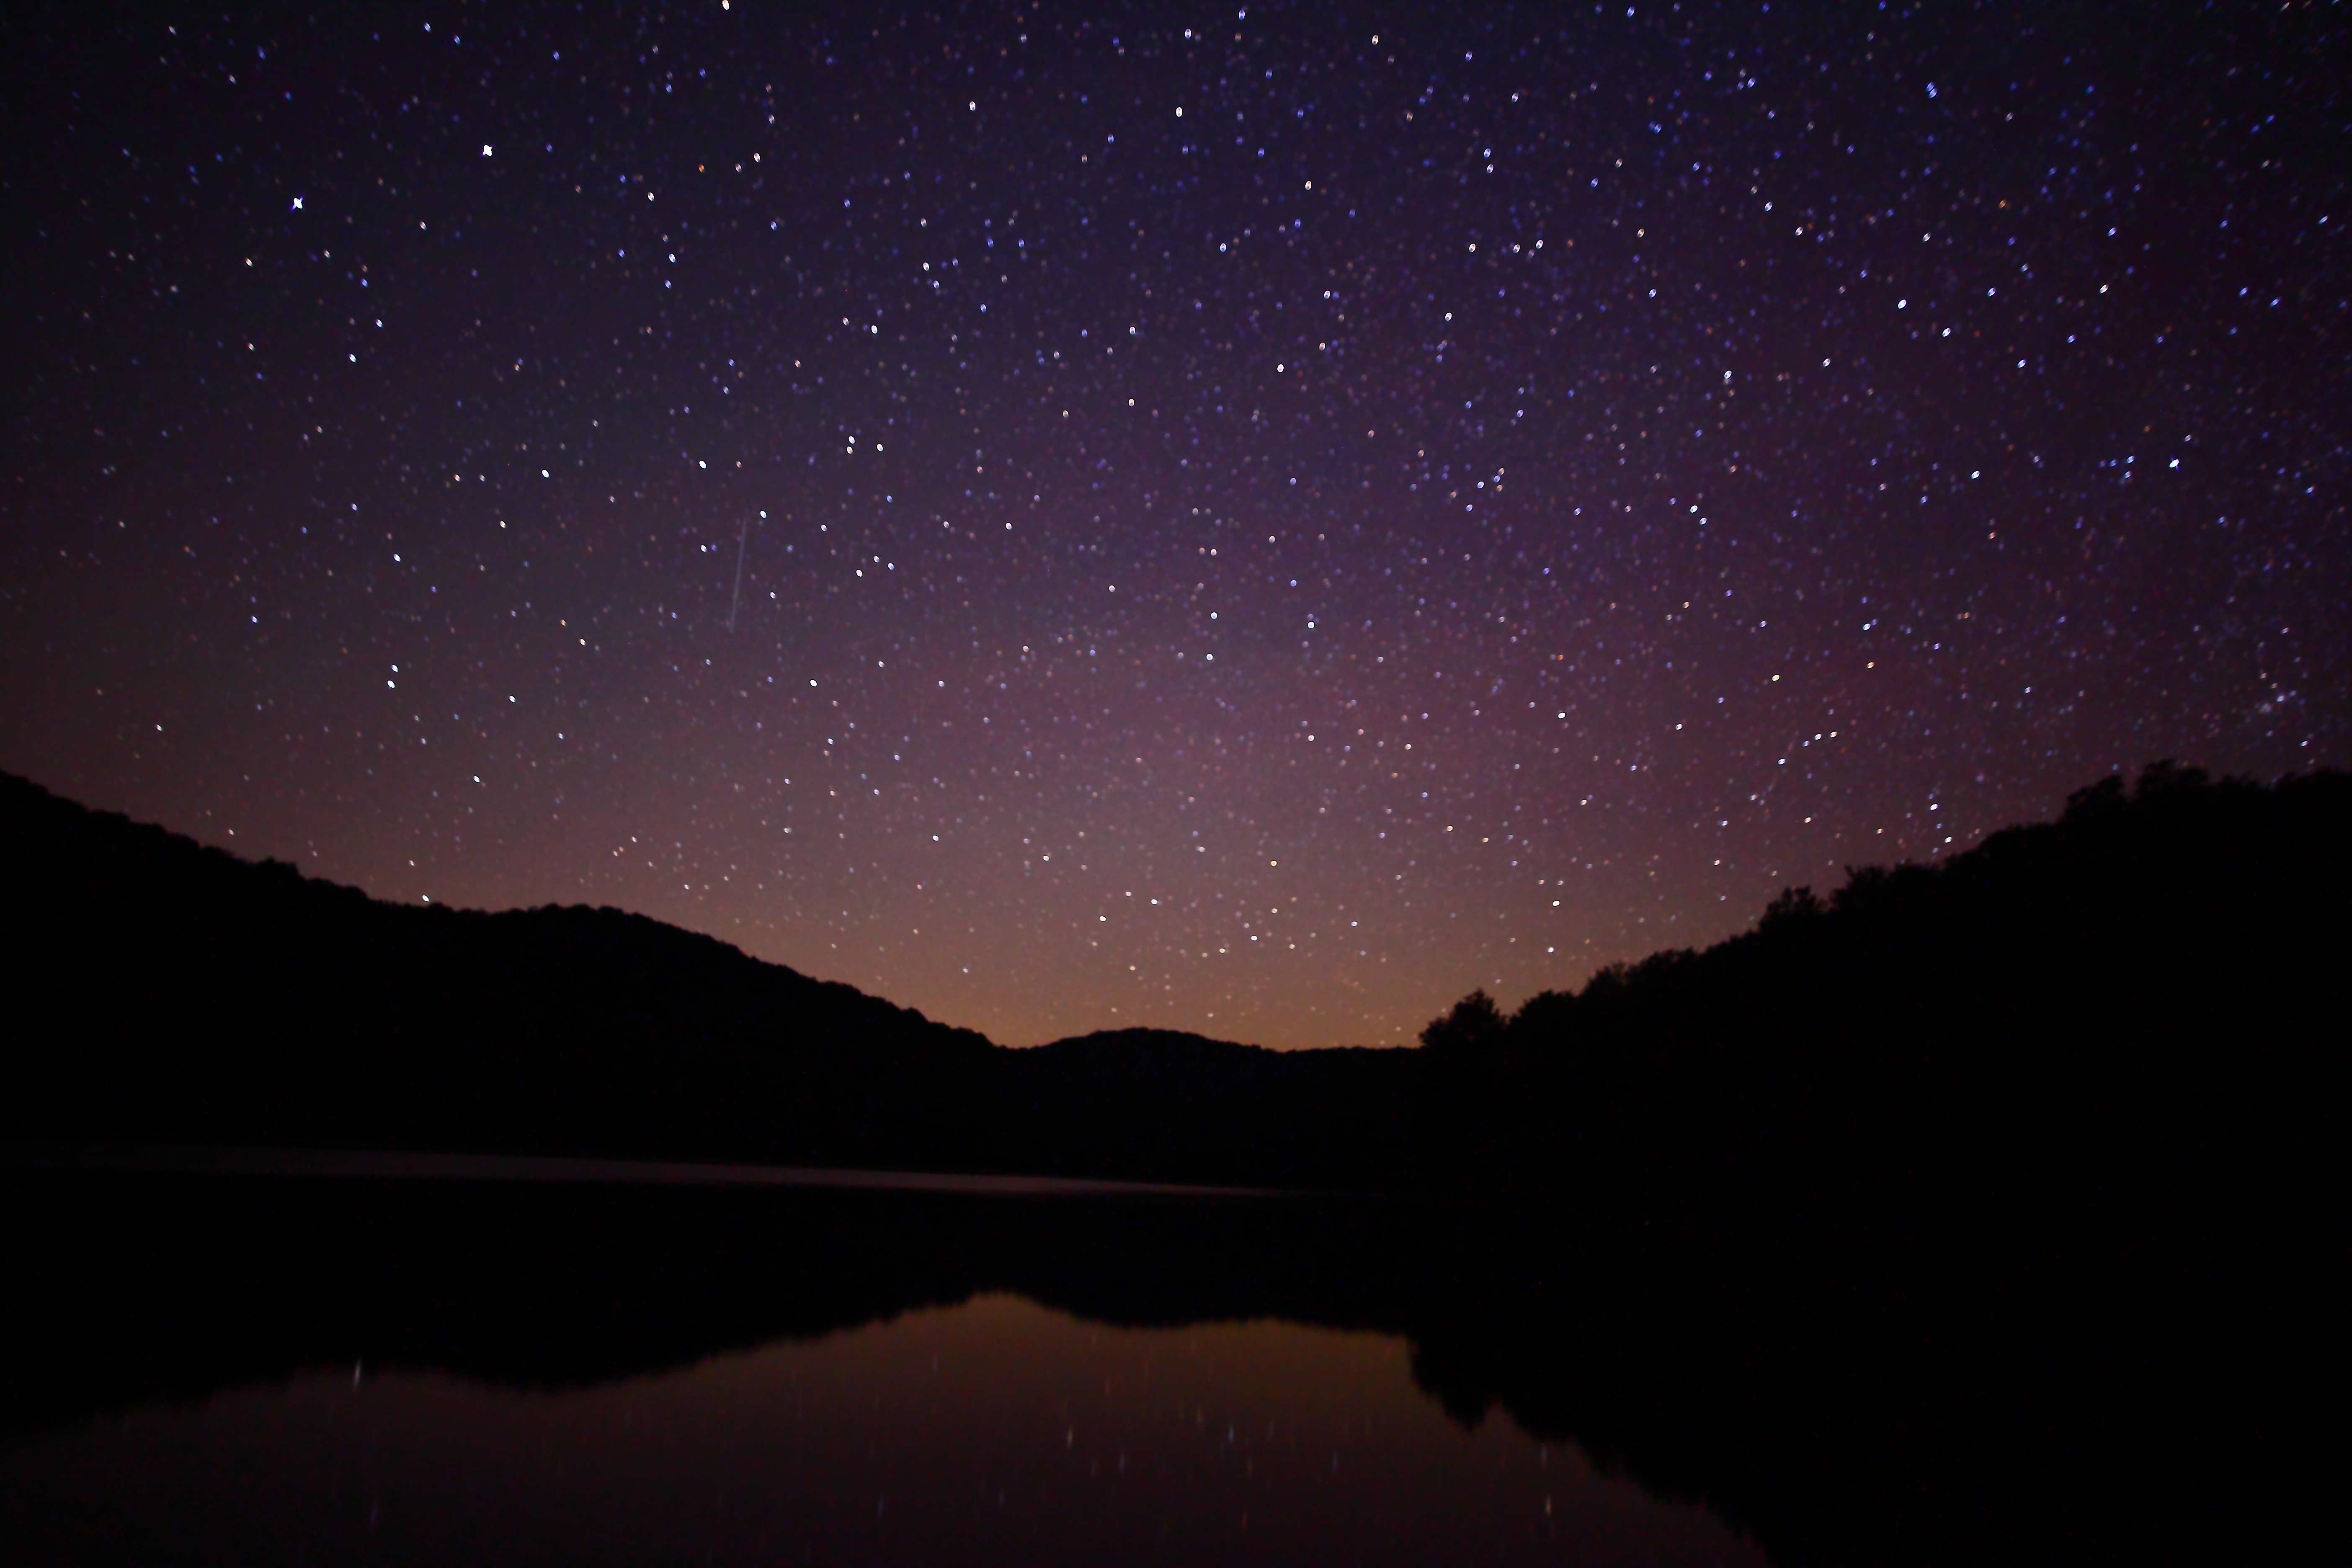 Starry Night Sky over the Lake 531.77 Kb